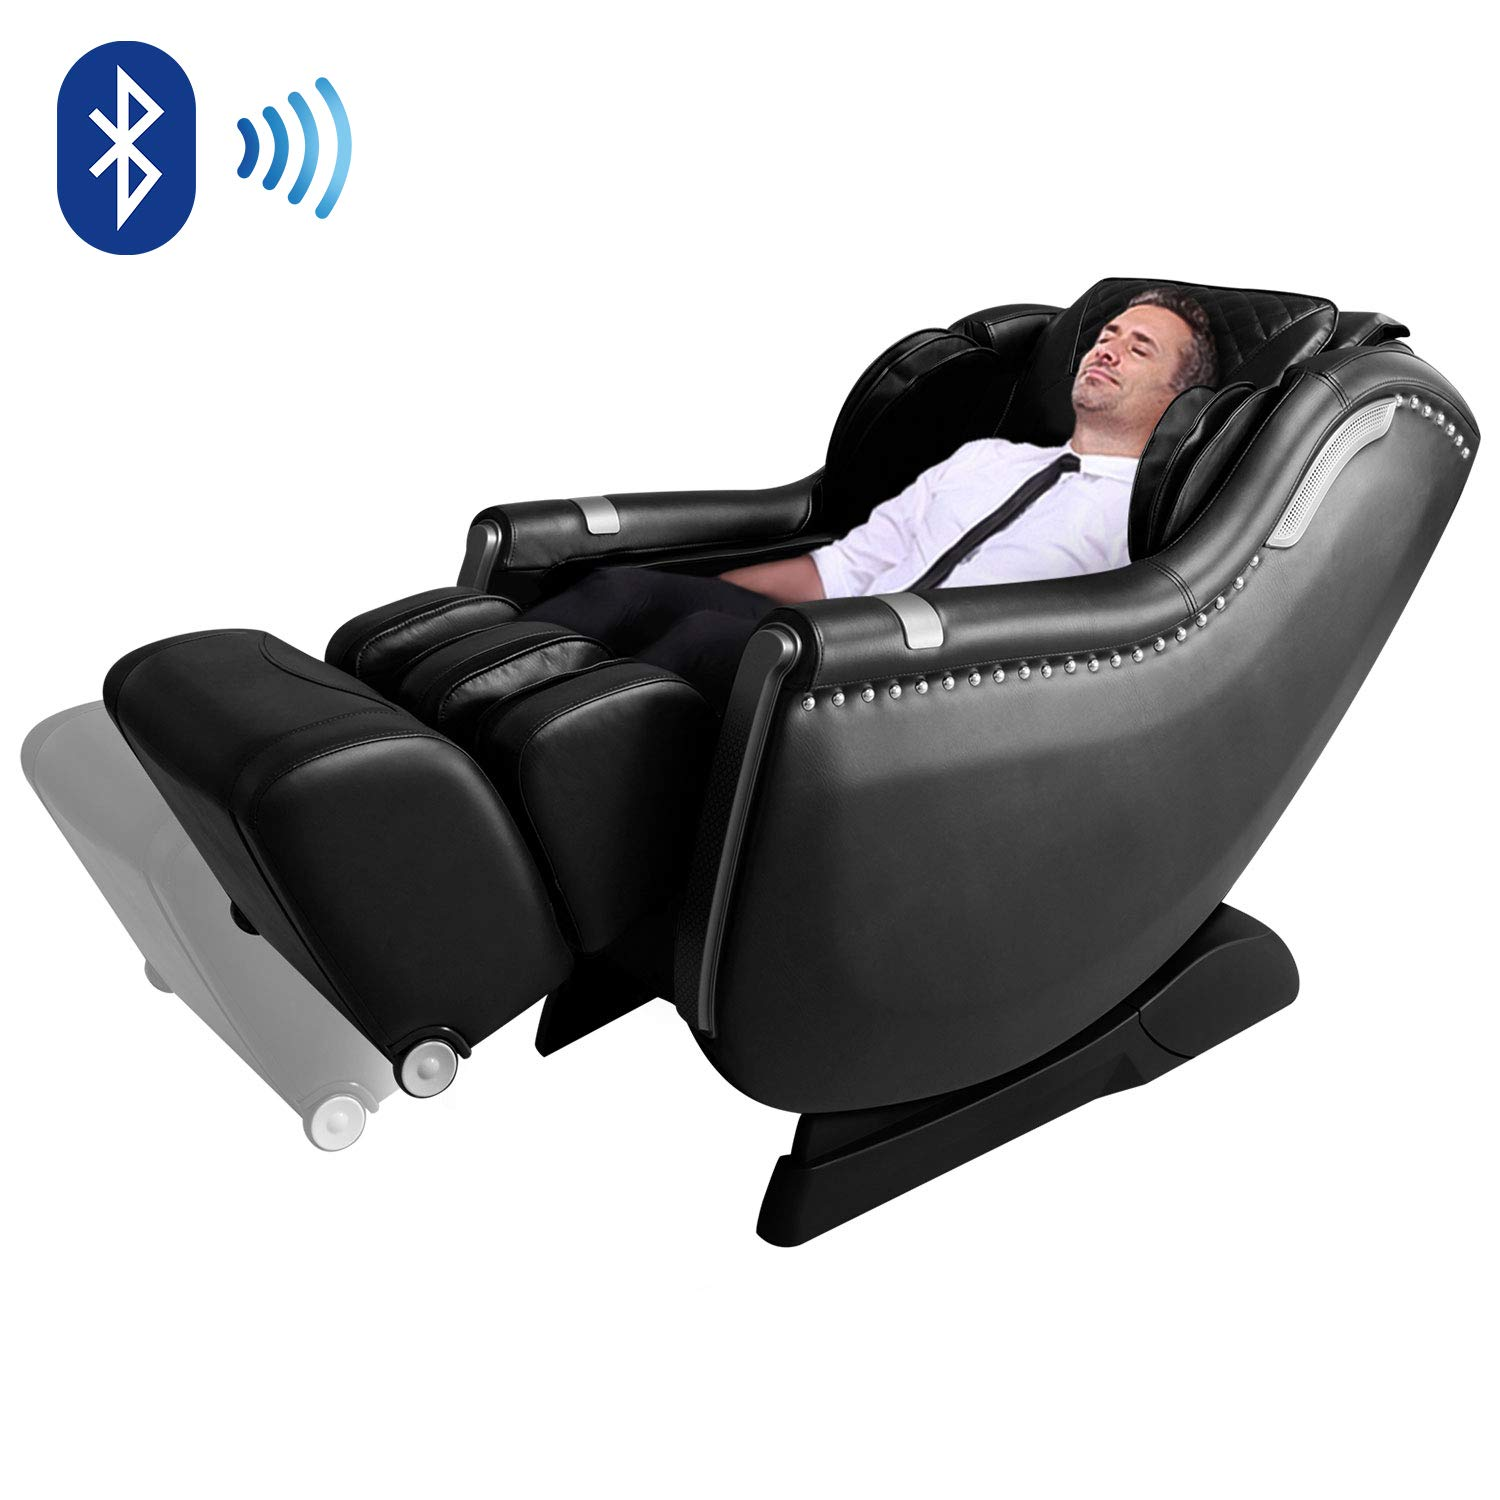 Massage Chair by OOTORI, Zero Gravity Massage Chair, 3D Full Body Massage Chairs and Recliner with Space Saving, Yoga Stretching, SL Track, Bluetooth Speaker, Heat,Foot Roller Vibrator